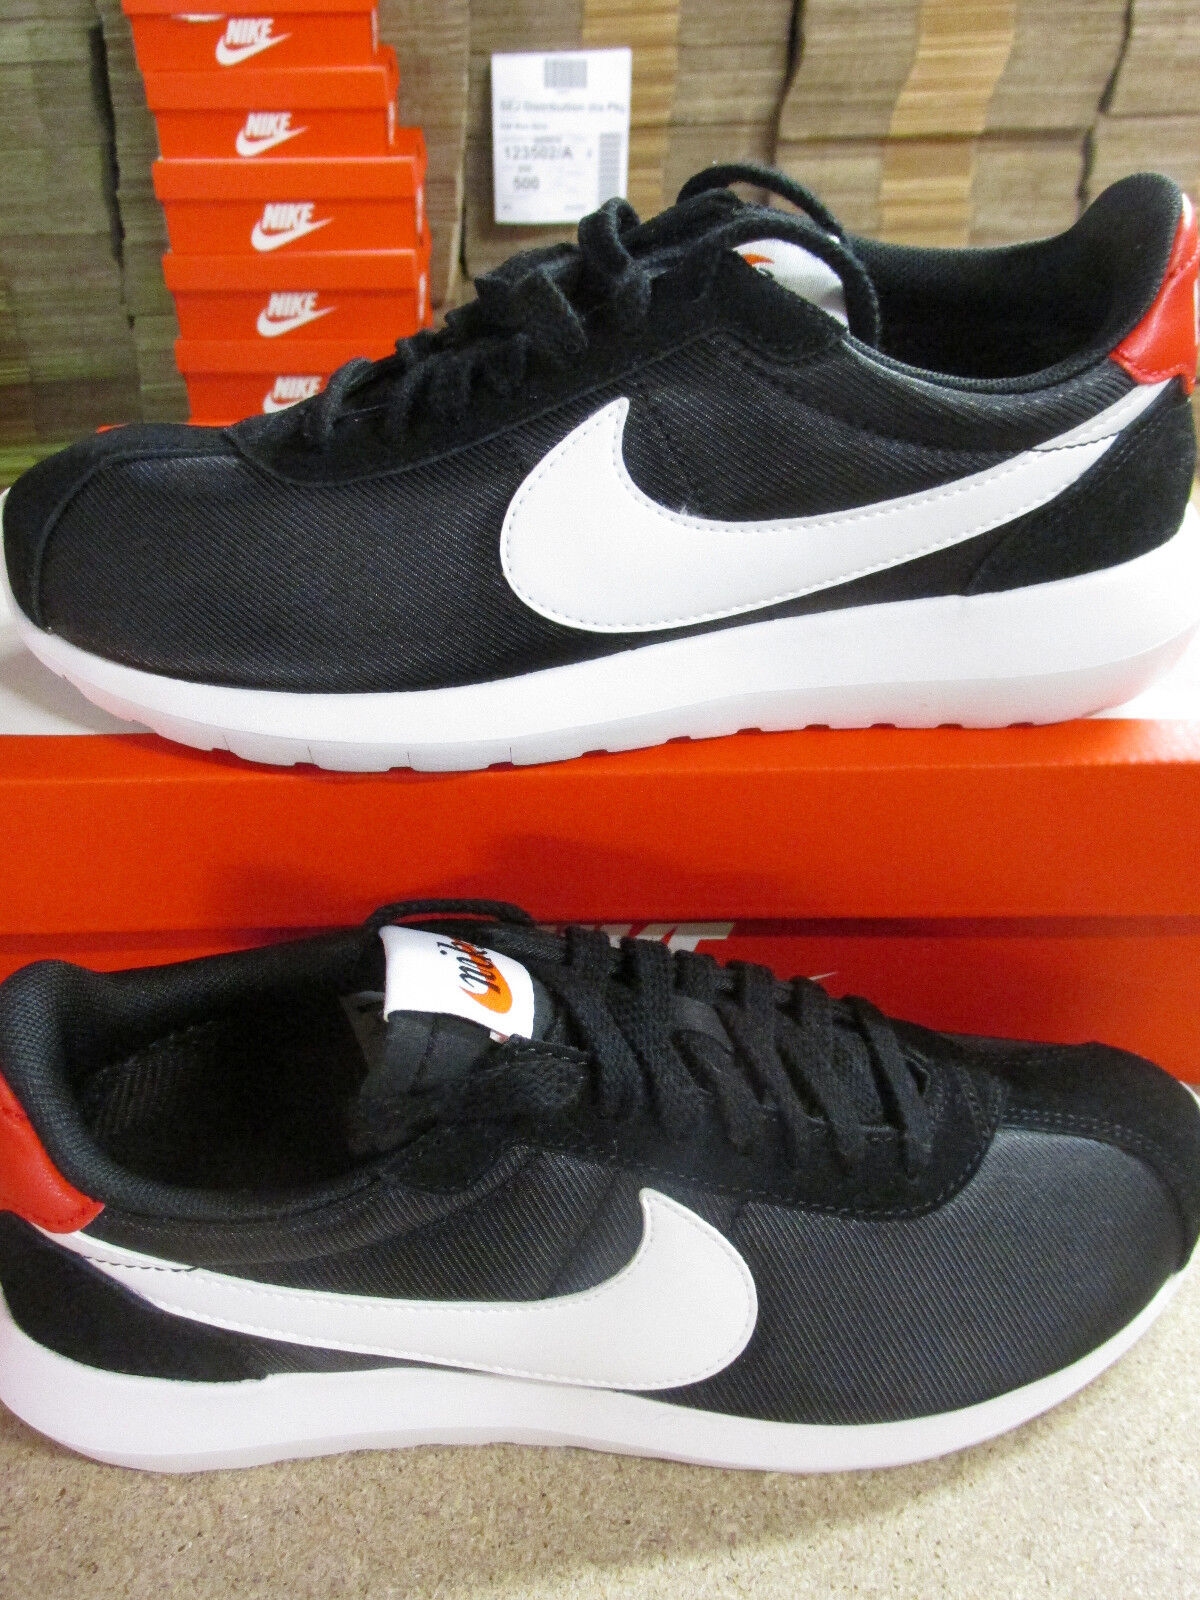 nike womens roshe LD-1000 trainers 819843 001 sneakers shoes Comfortable and good-looking